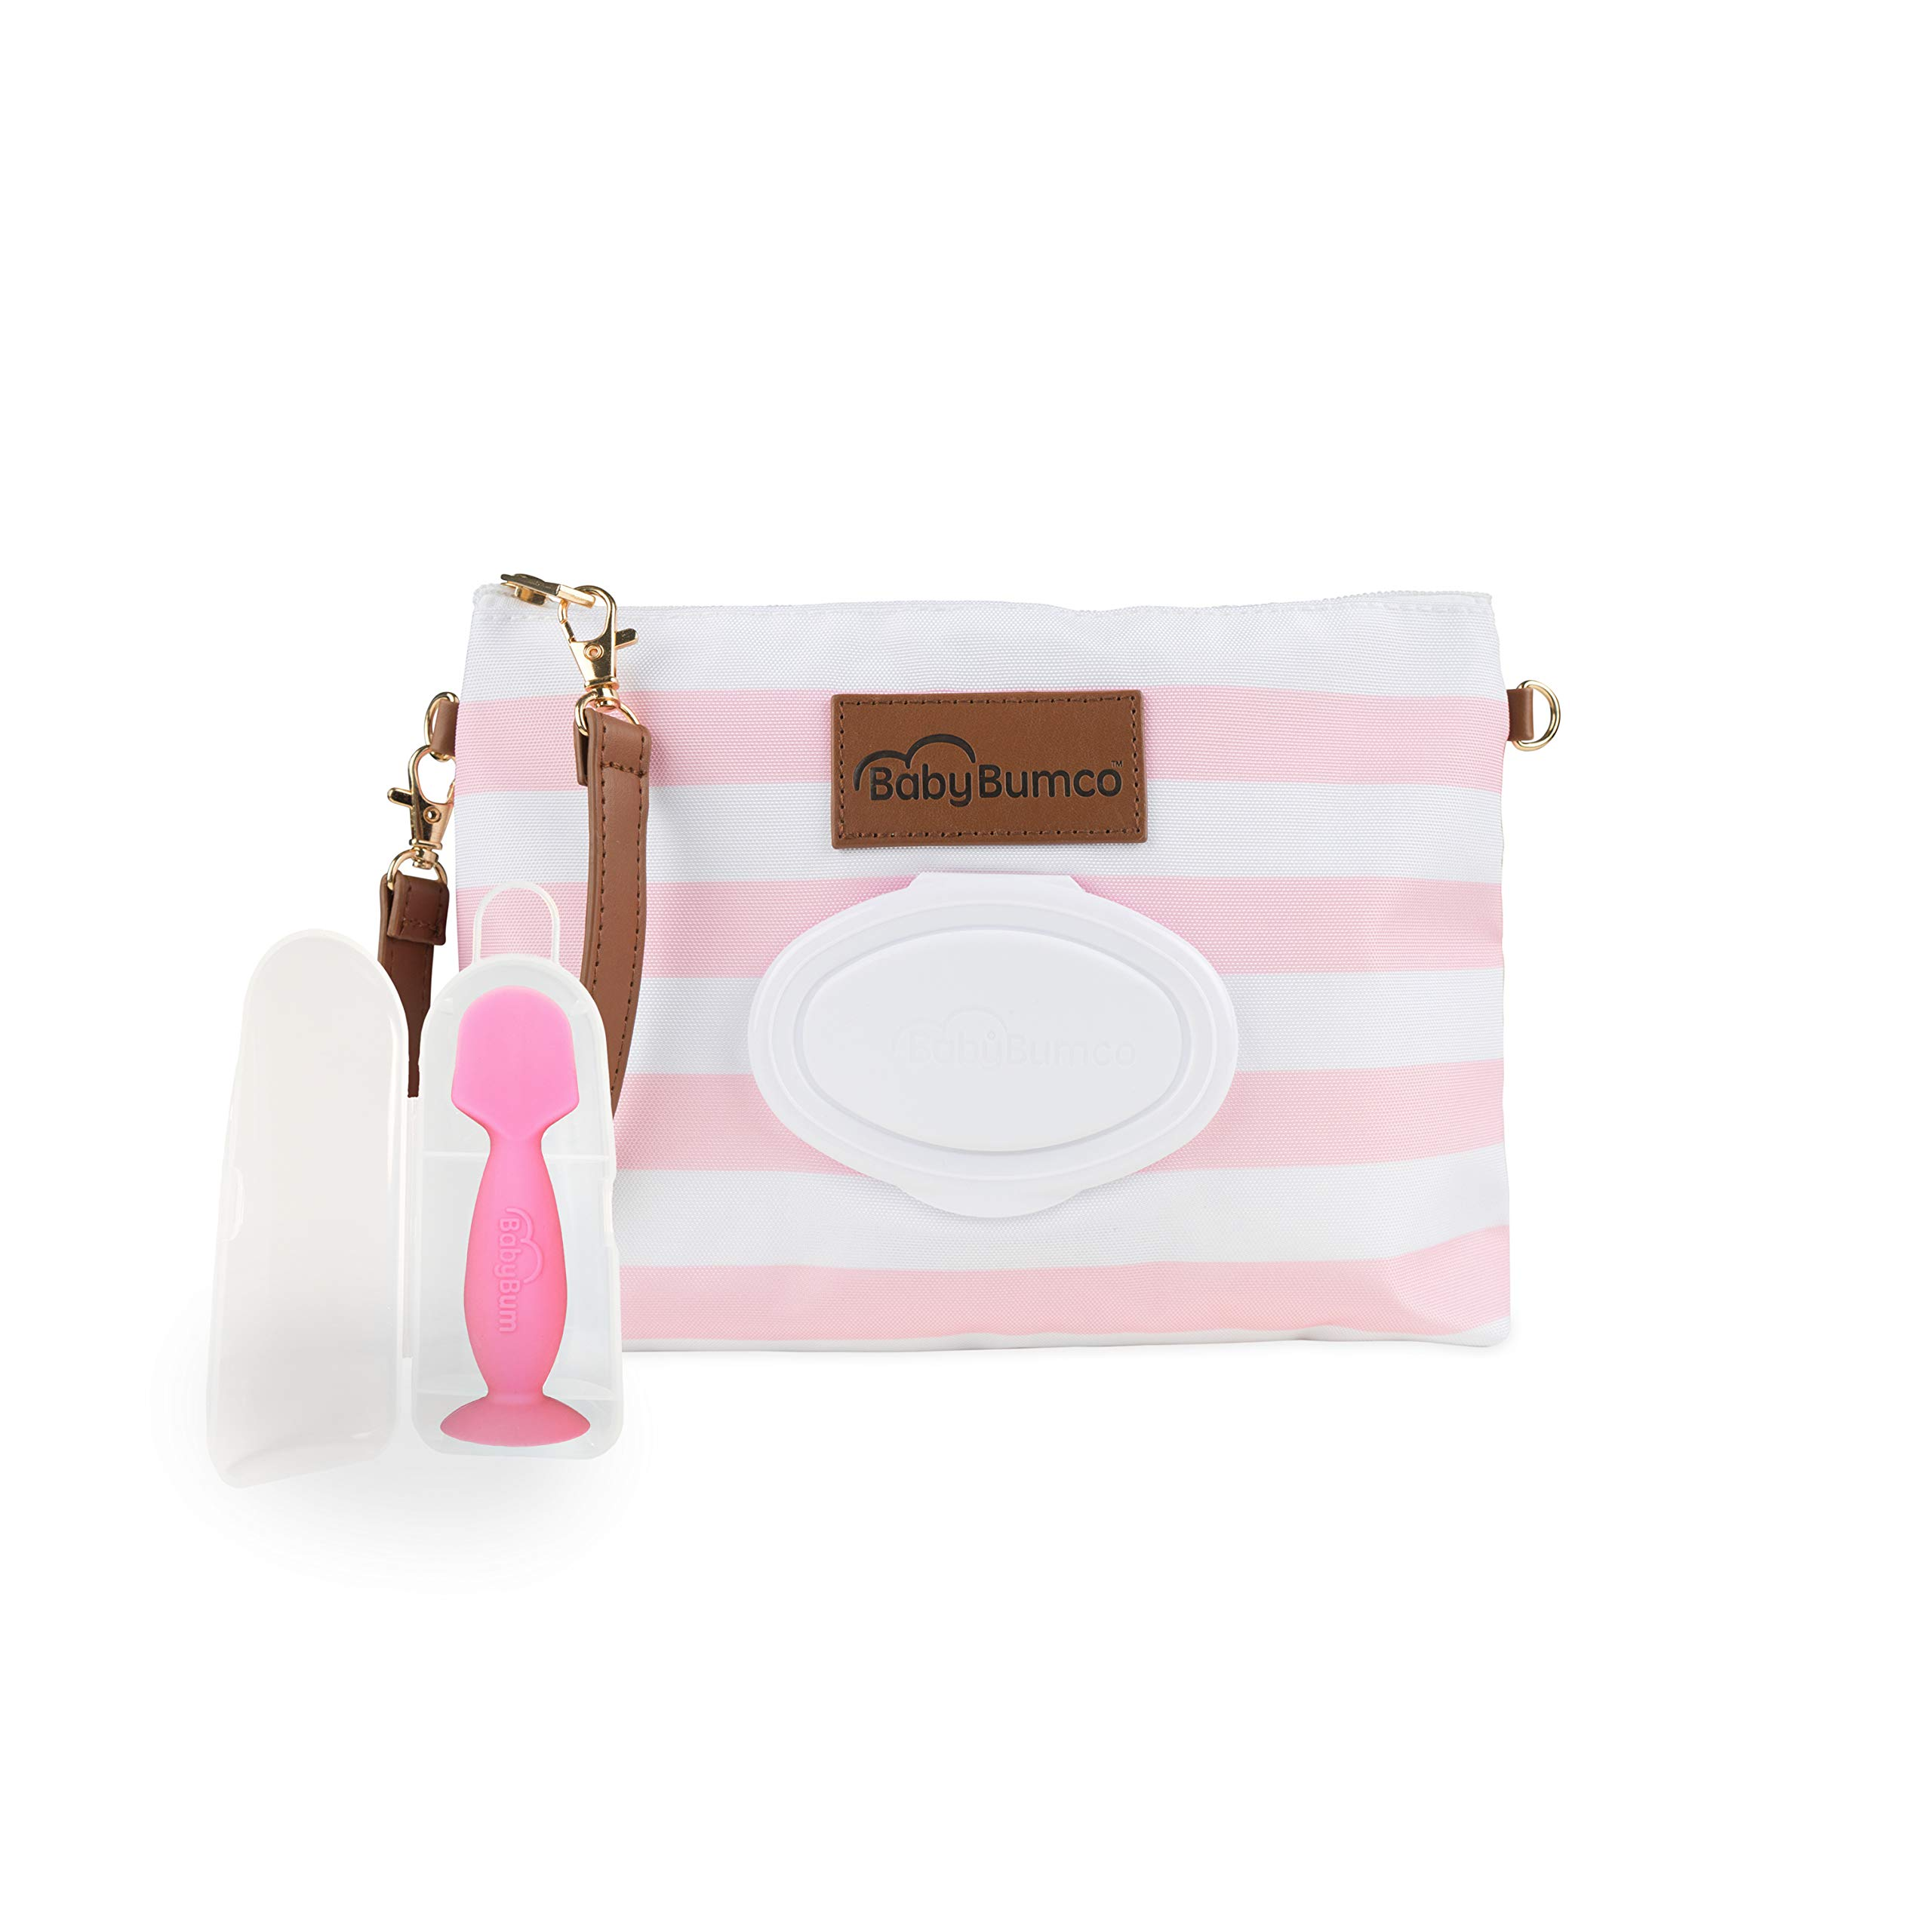 Diaper Clutch Bag and Mini Rash Cream Applicator with Travel Case, Soft Flexible Silicone - Water Resistant; Lightweight; Refillable Wipes Dispenser; Portable Changing Kit (Pretty Pink + Pink)